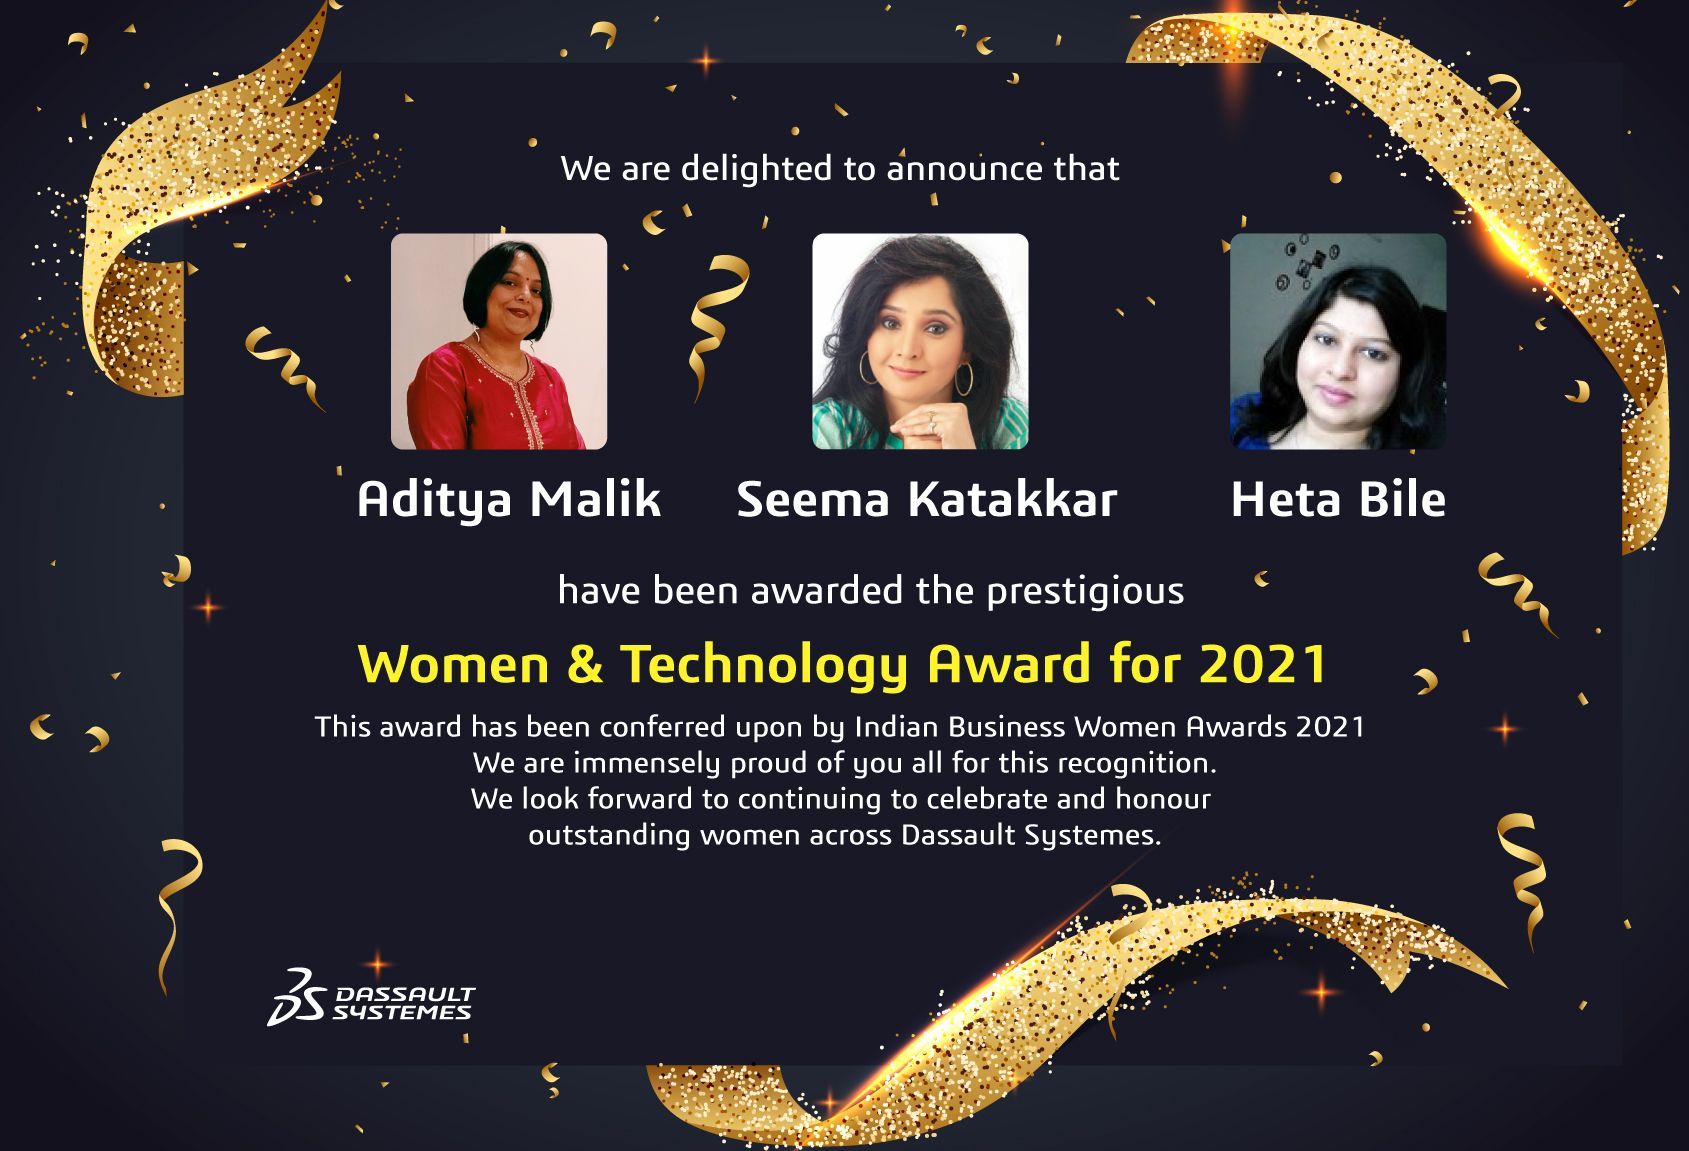 Women & Technology Award